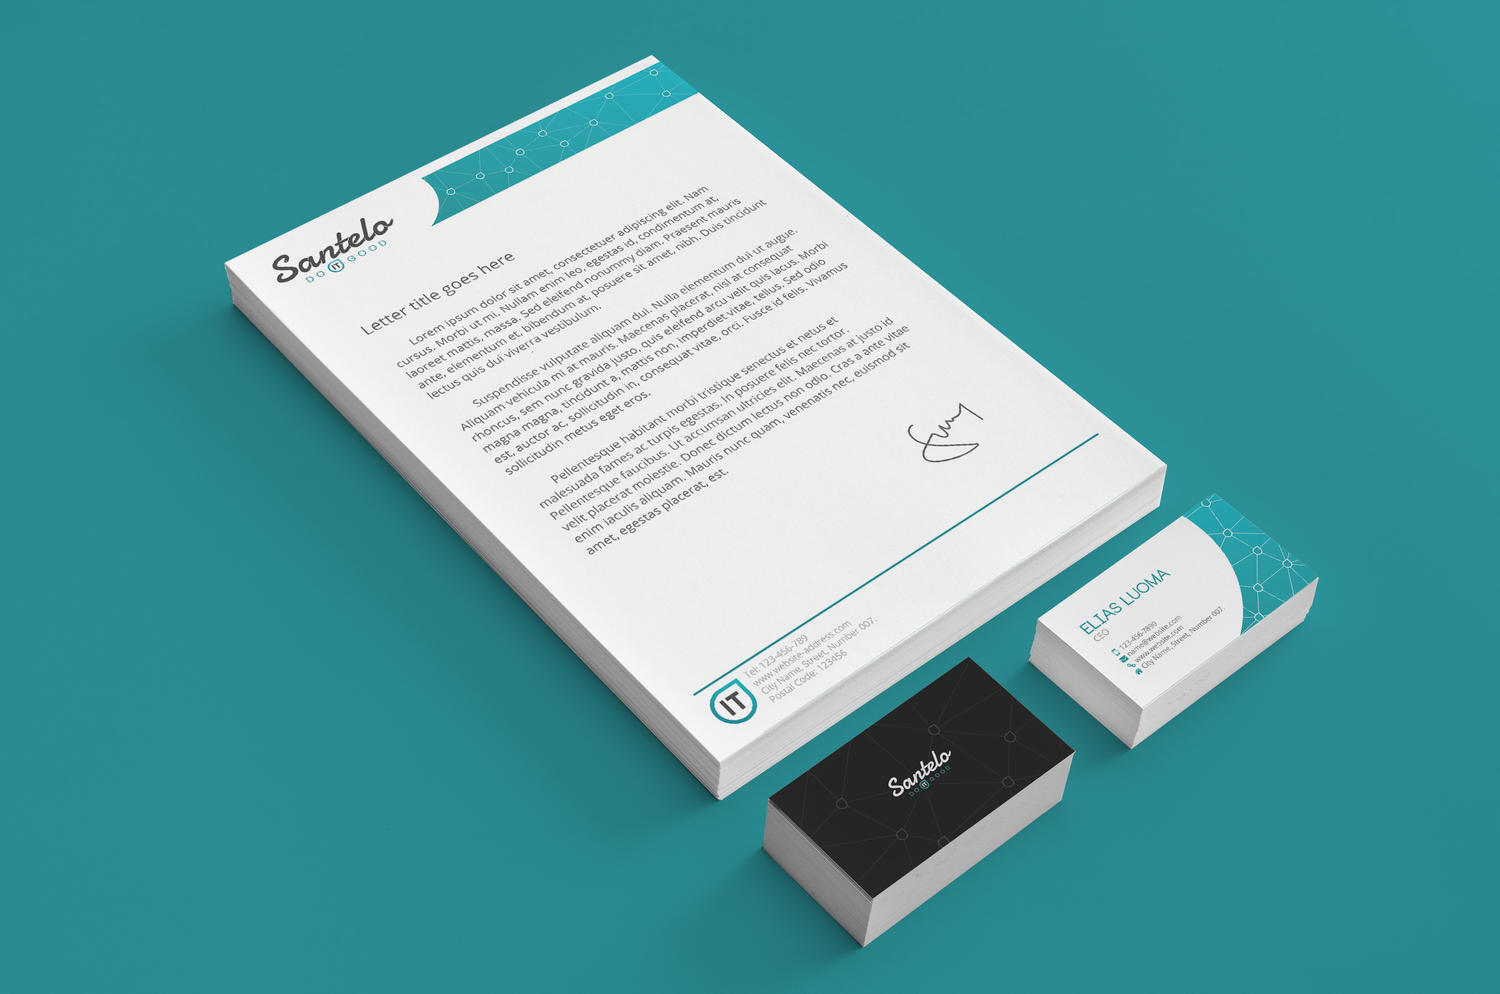 Premium Stationery Design & Marketing Collateral by WhiteX - 71080